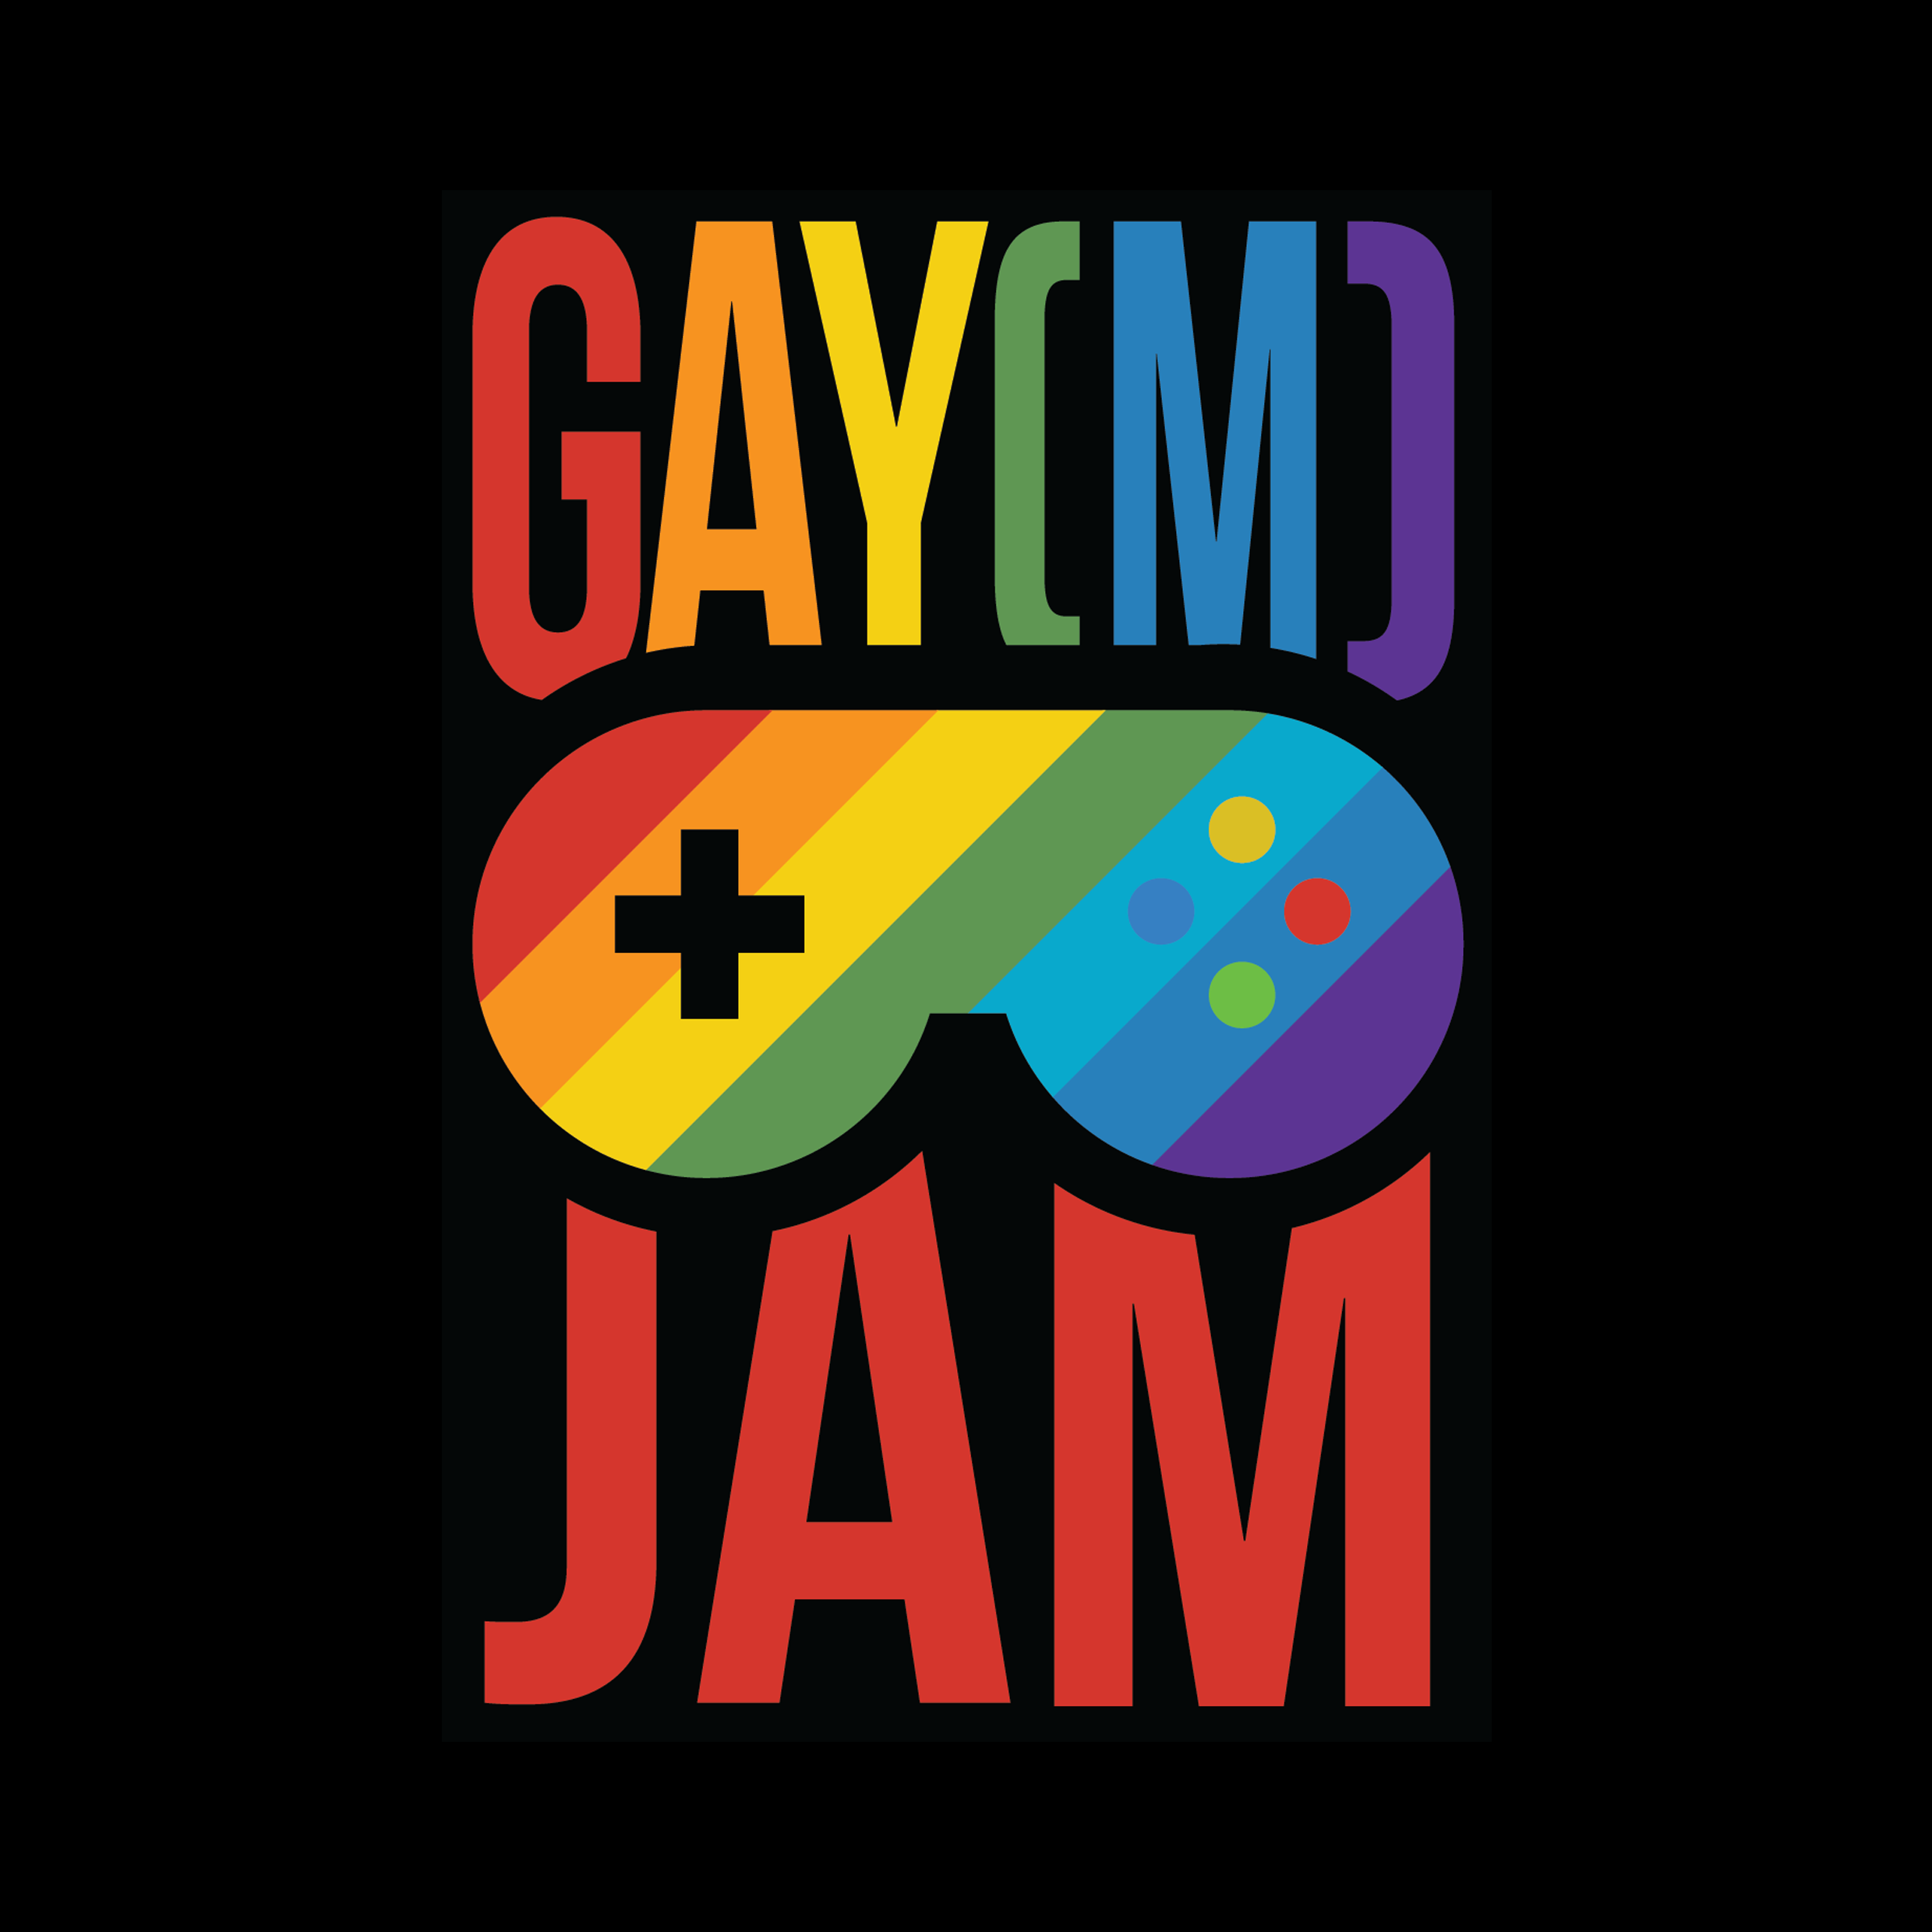 Brighton's first ever Gay(M) Jam